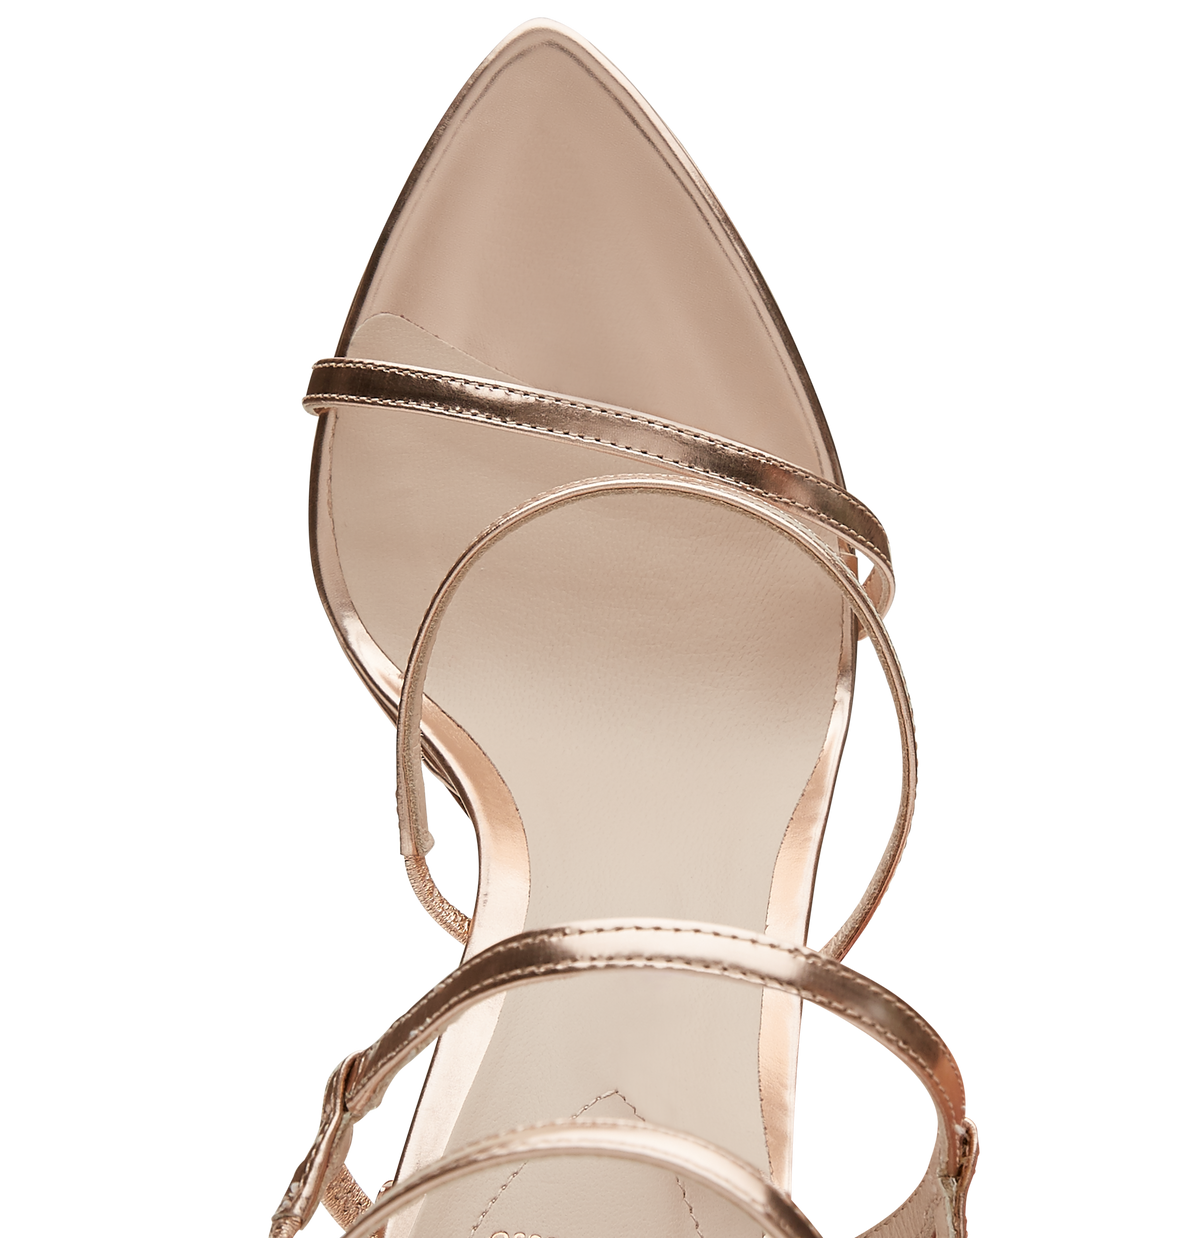 Mirrored Rose Gold Leather Eden Sandals with Rose Gold Leaves